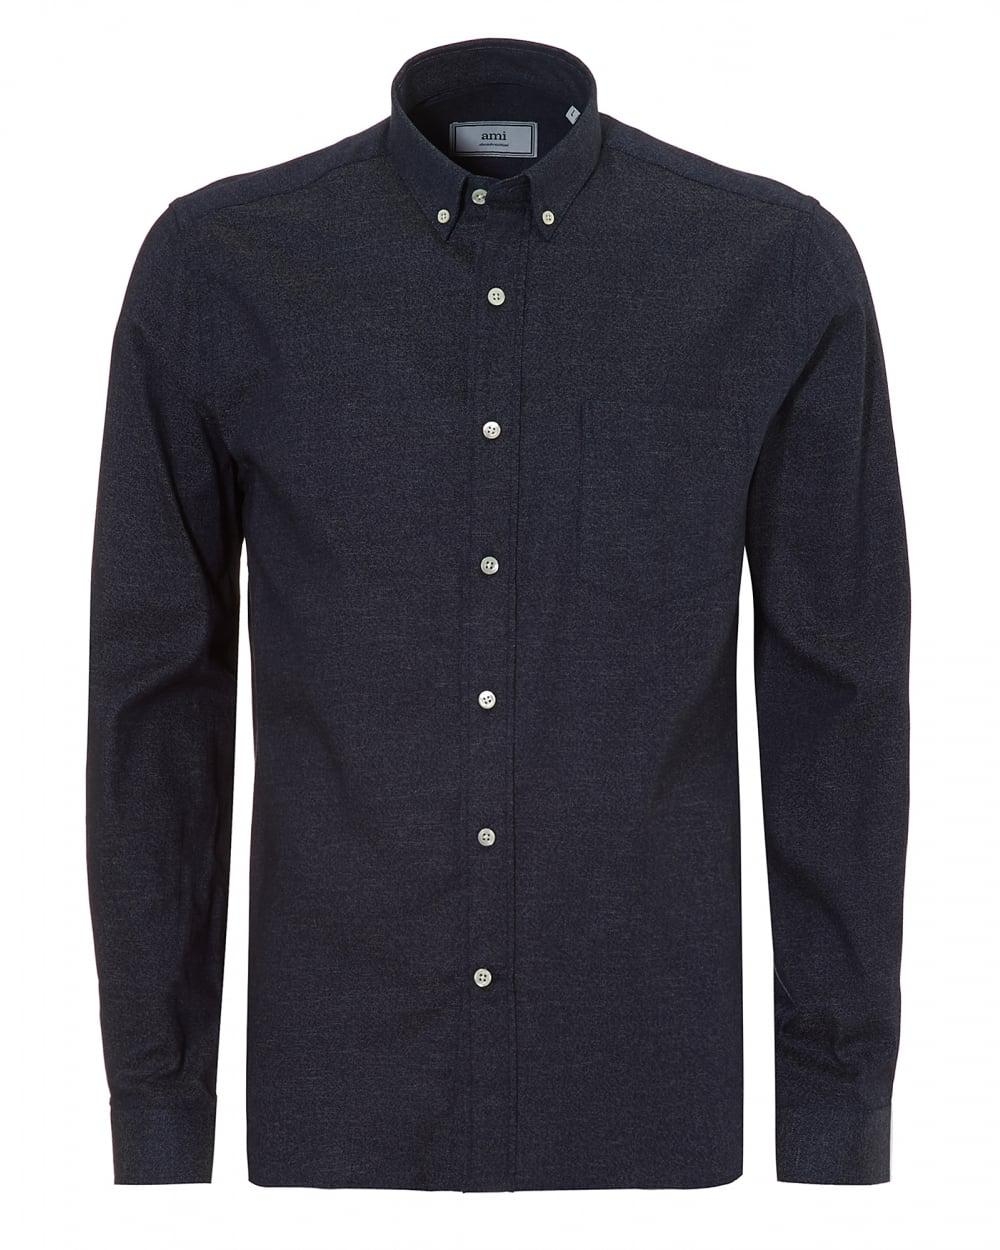 Lyst ami flannel denim indigo shirt in blue for men for Flannel shirt and jeans